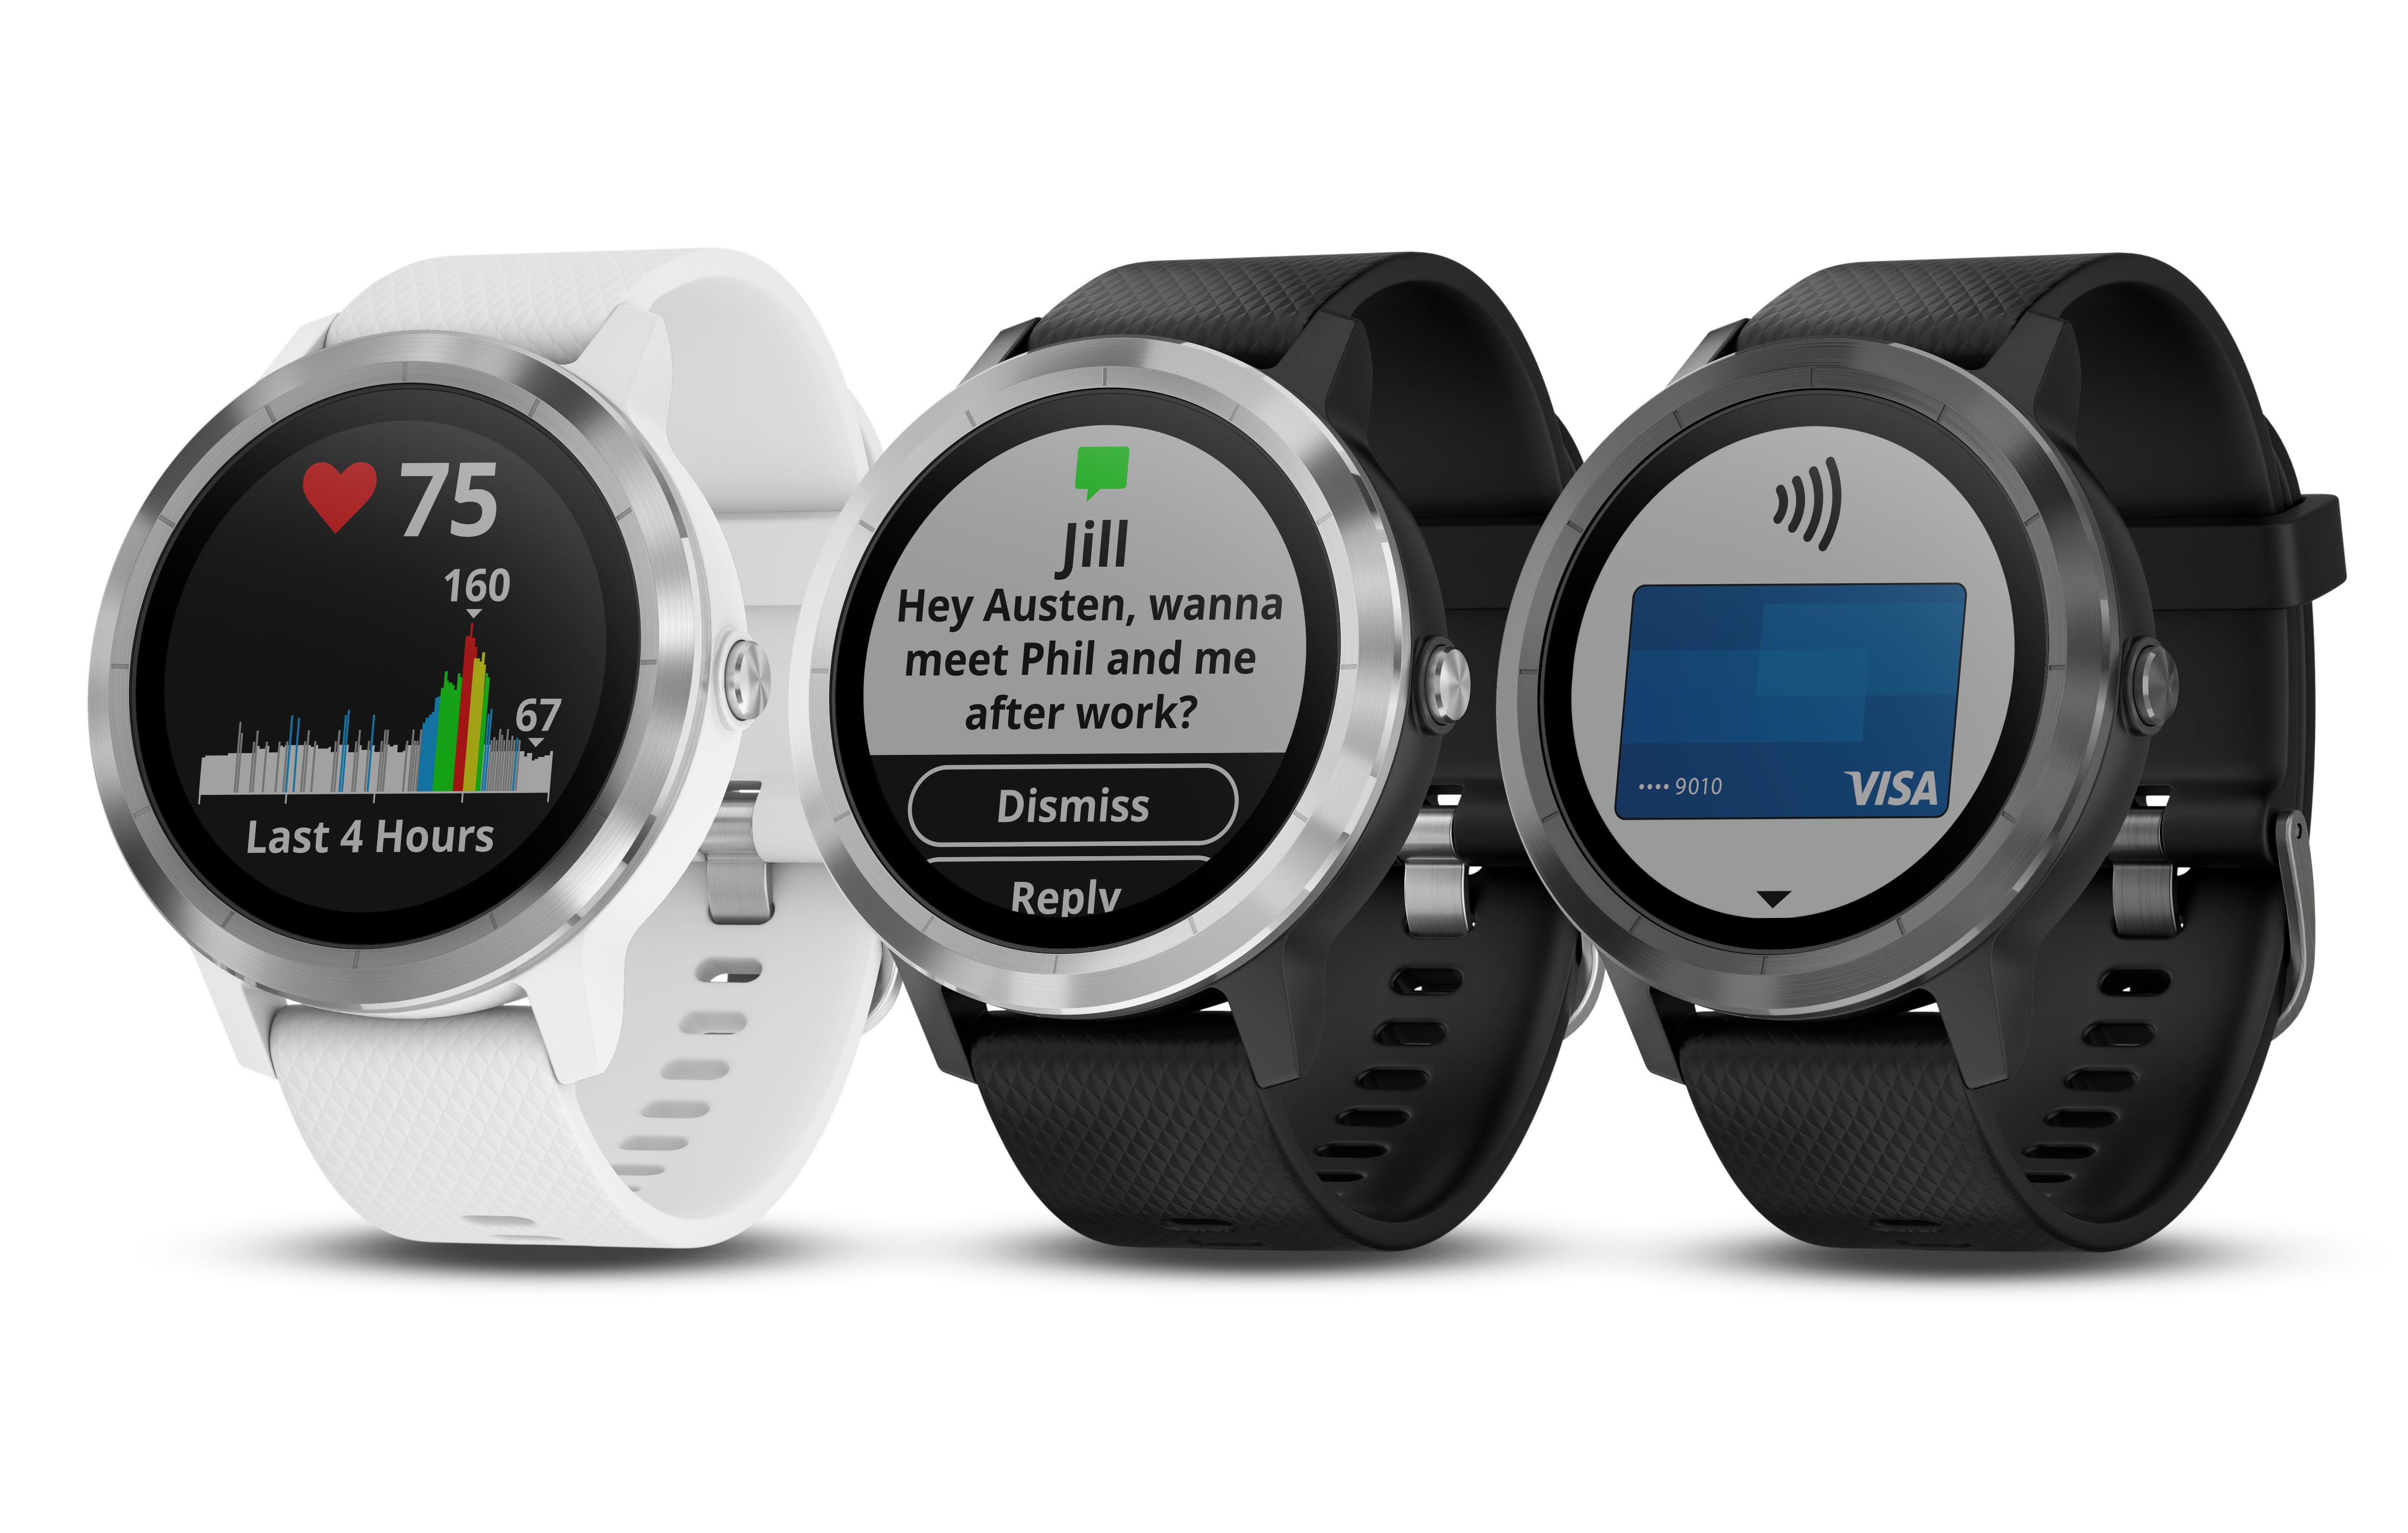 Garmin debuts three new wearables and a mobile payment